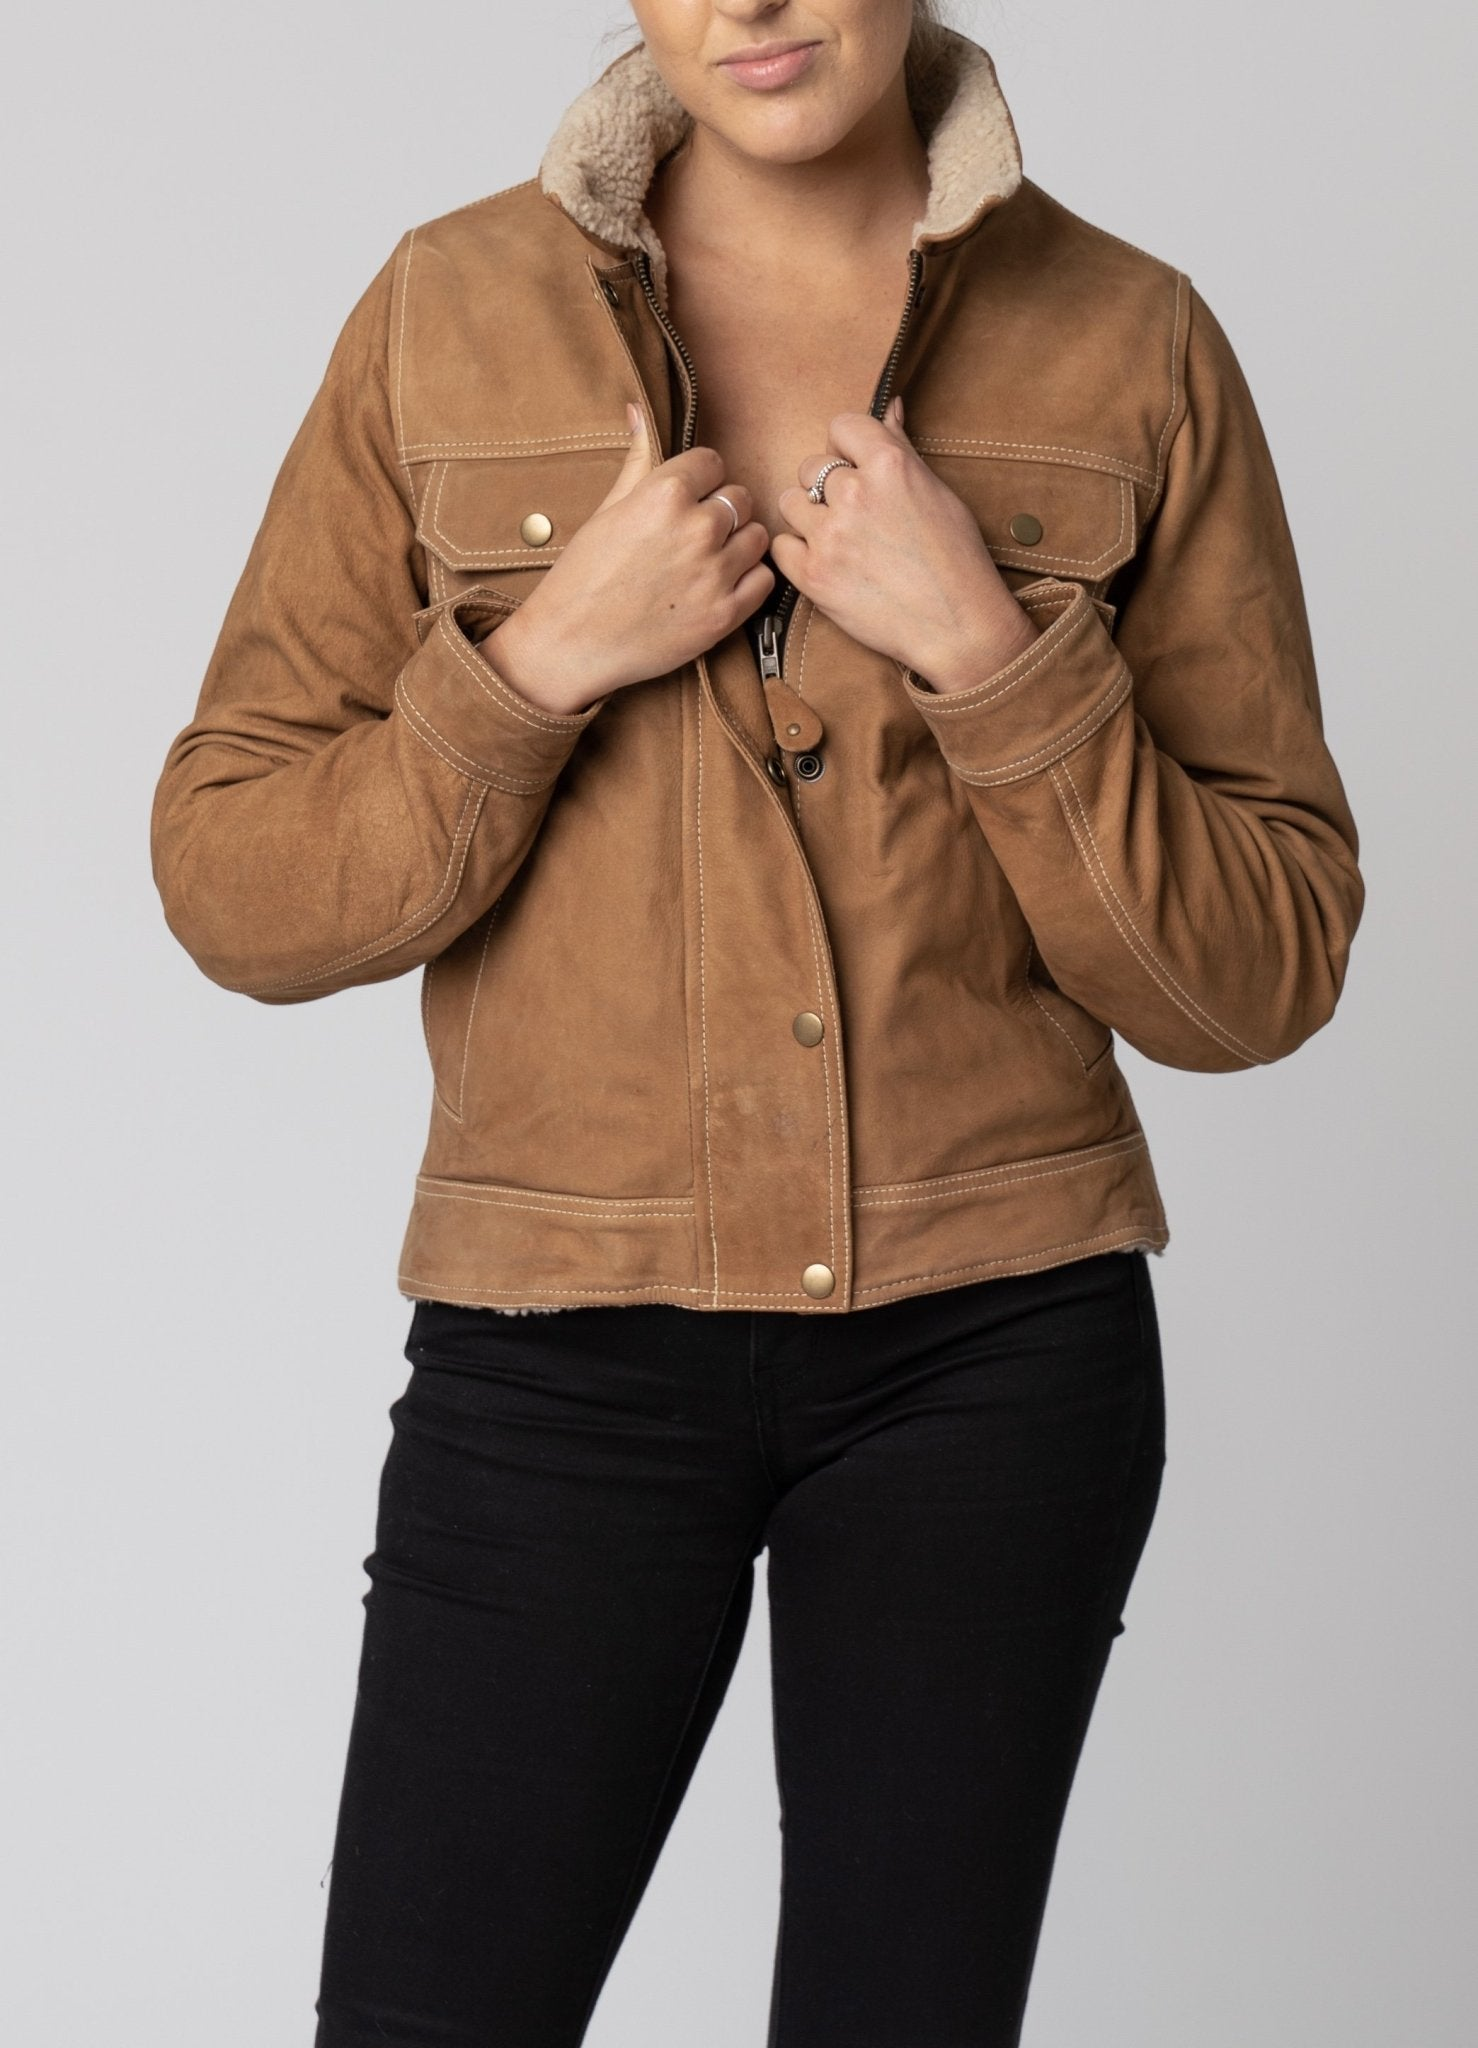 Blackbird - Blackbird Ladies Dakota Nubuck Leather Jacket - Ladies Jackets - Salt Flats Clothing